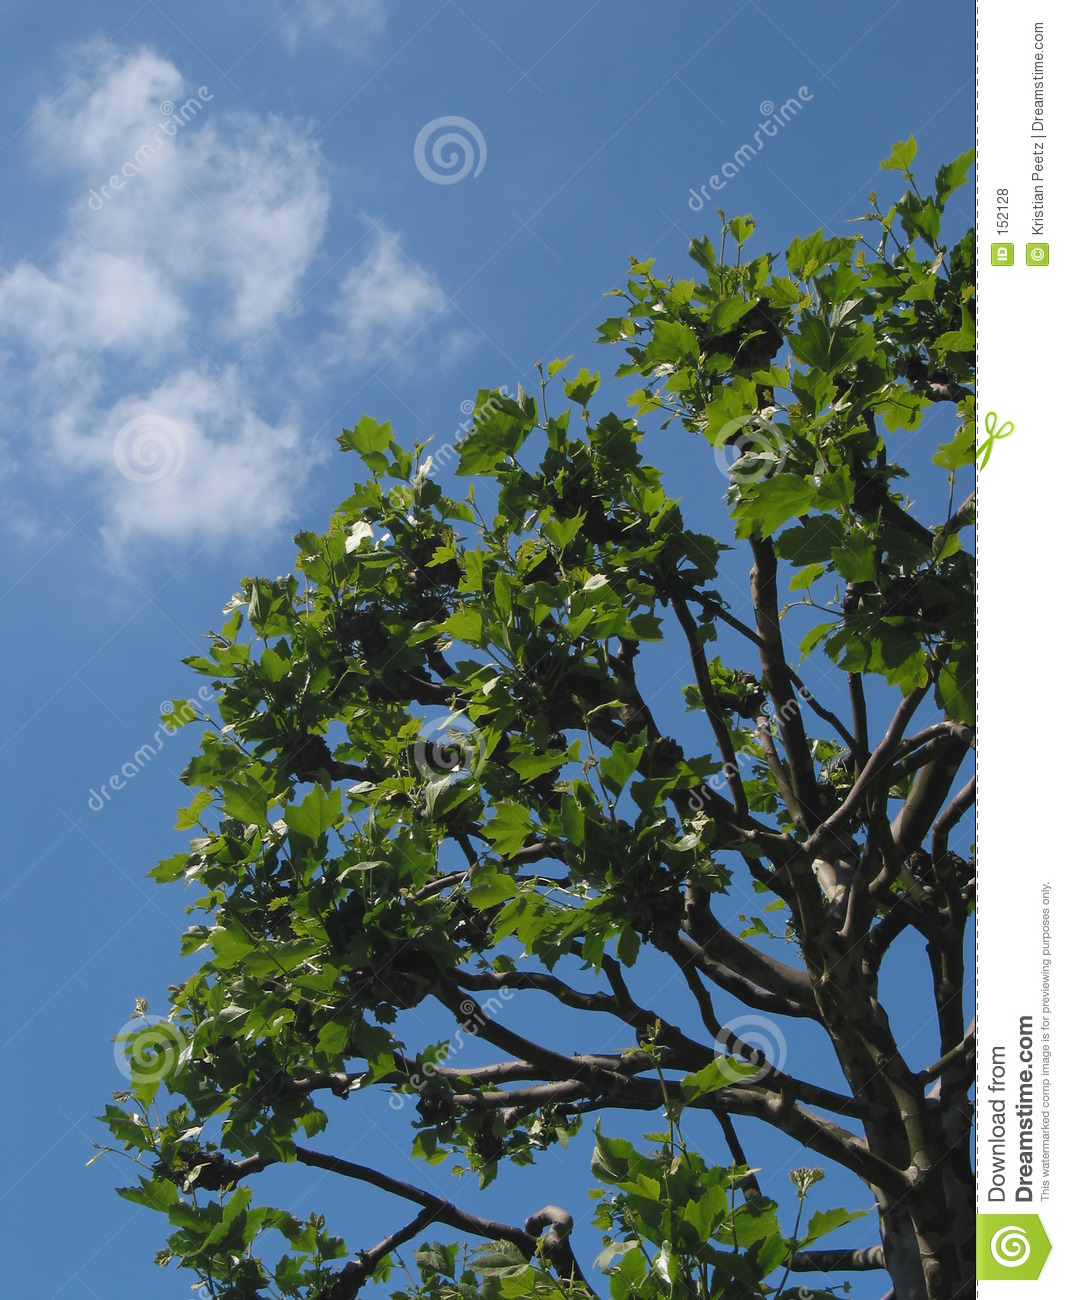 Bright blue sky and a tree